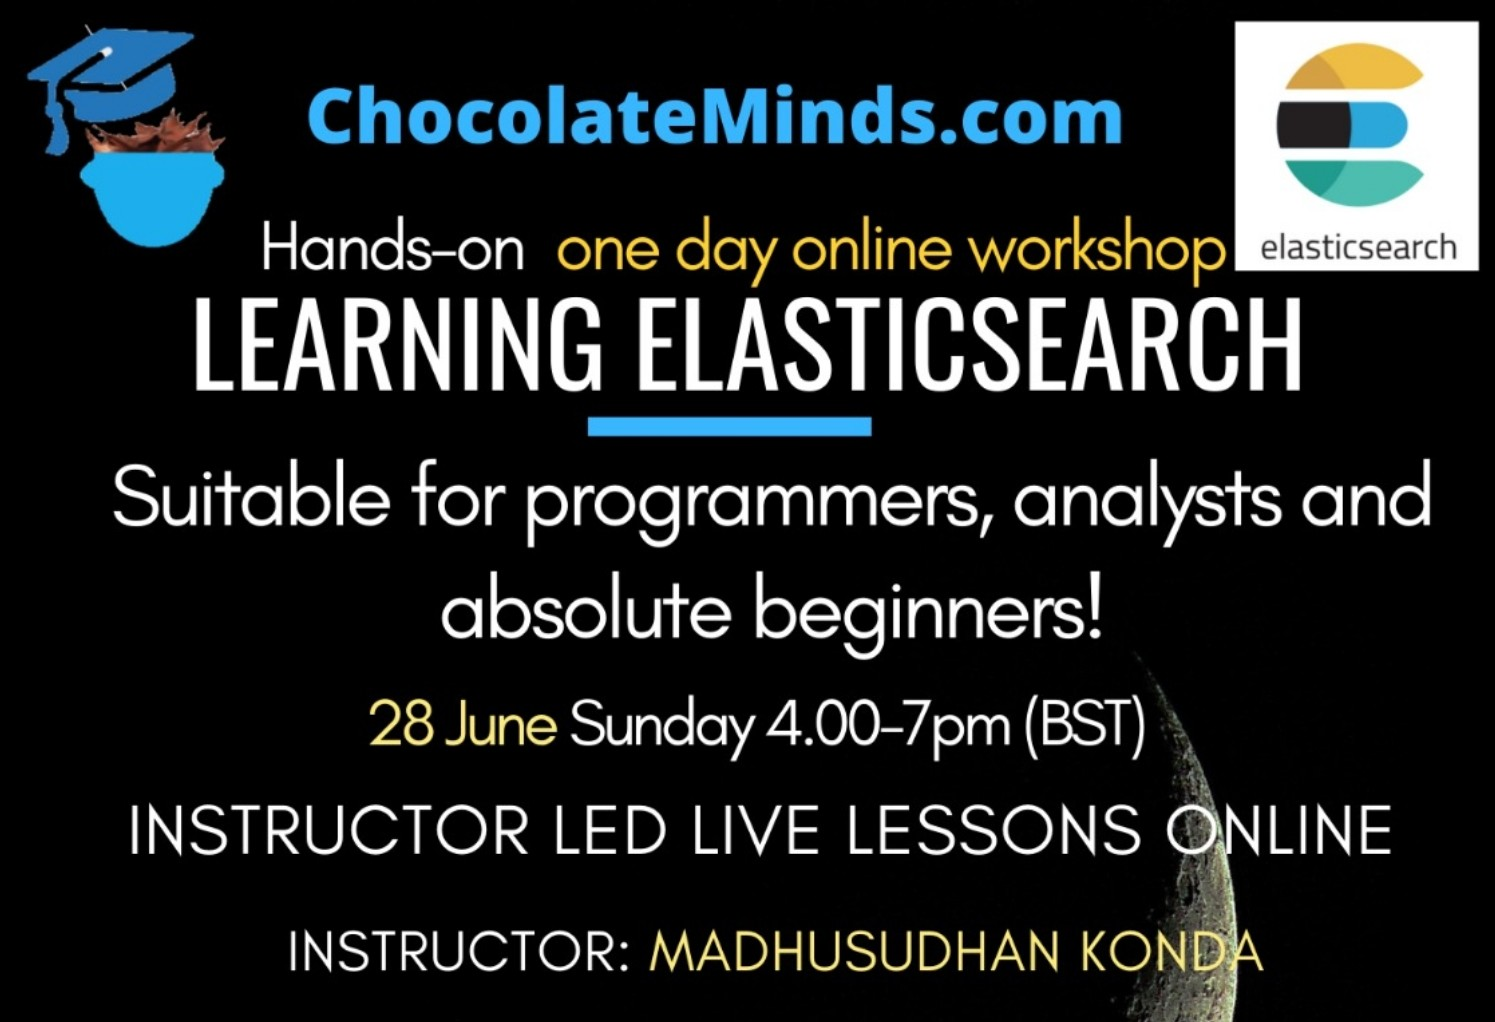 Learning Elasticsearch Hands-on Workshop